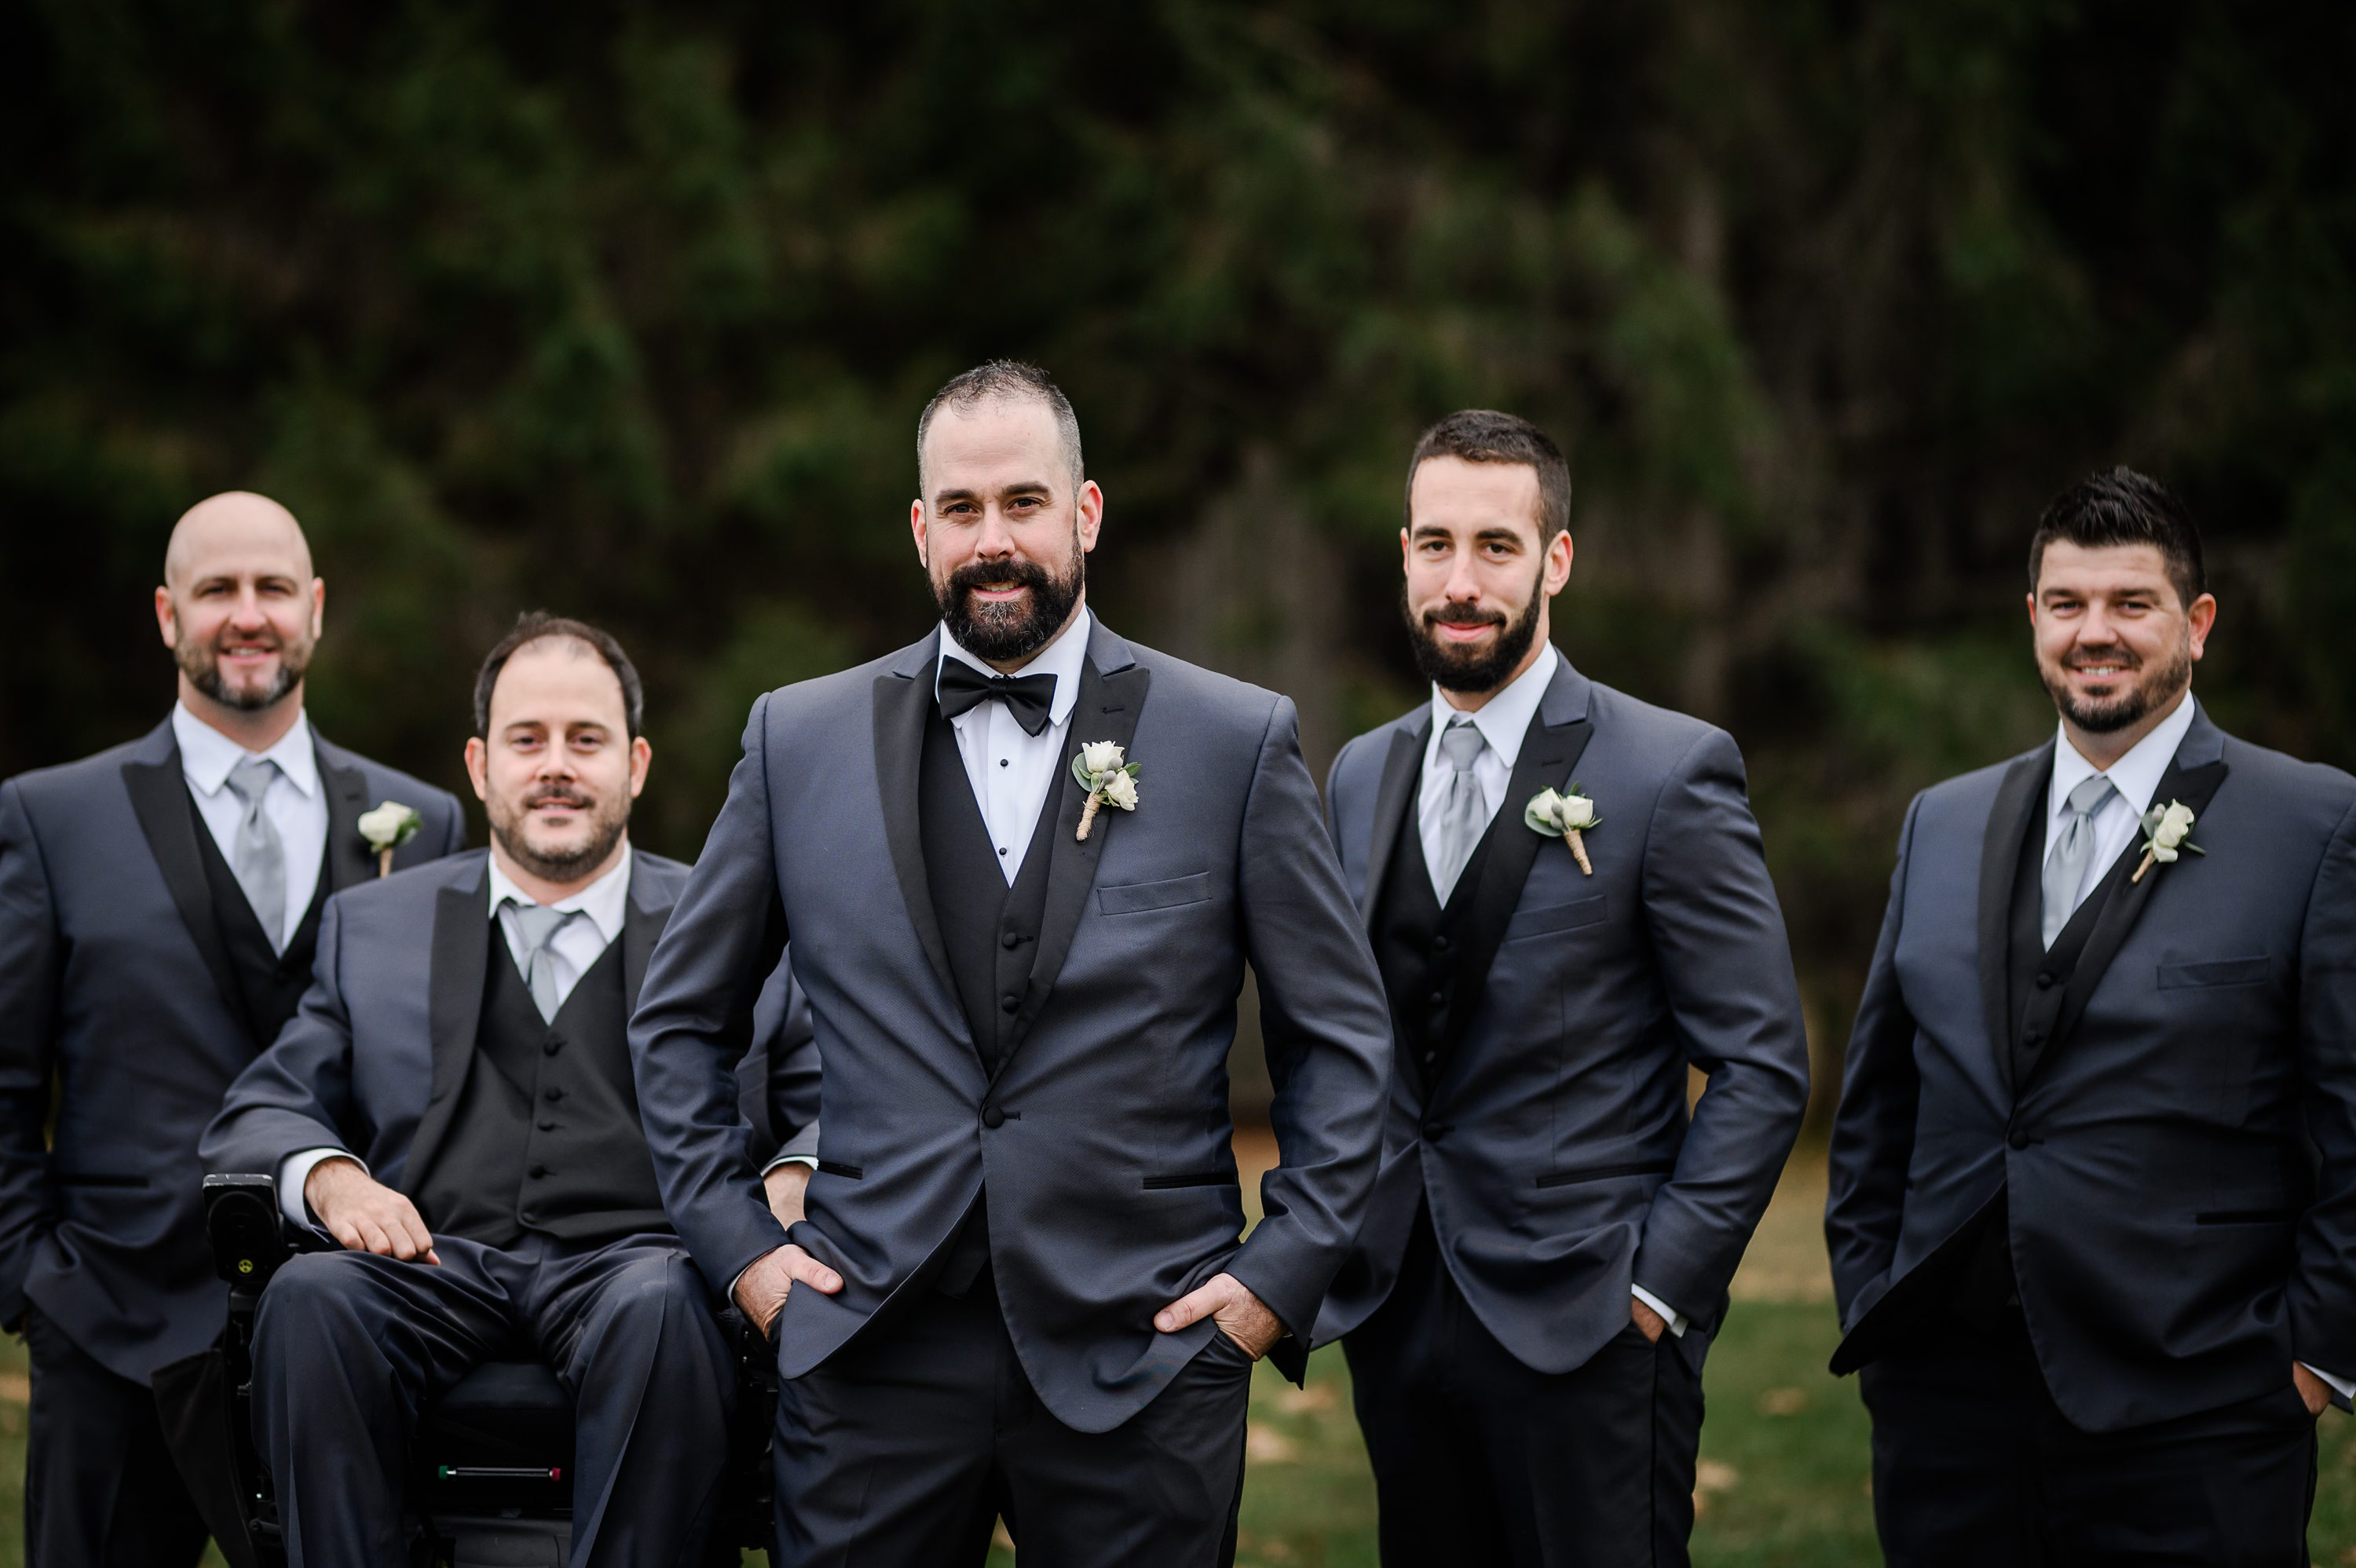 Retirer un terme : casselman casselmanRetirer un terme : covid wedding covid weddingRetirer un terme : drouin farm wedding drouin farm weddingRetirer un terme : eastern ontario eastern ontarioRetirer un terme : ferme drouin ferme drouinRetirer un terme : mariage mariageRetirer un terme : night wedding photos night wedding photosRetirer un terme : ottawa wedding ottawa weddingRetirer un terme : photos de mariage de nuit photos de mariage de nuitRetirer un terme : sparklers sparklersRetirer un terme : twilight wedding twilight wedding